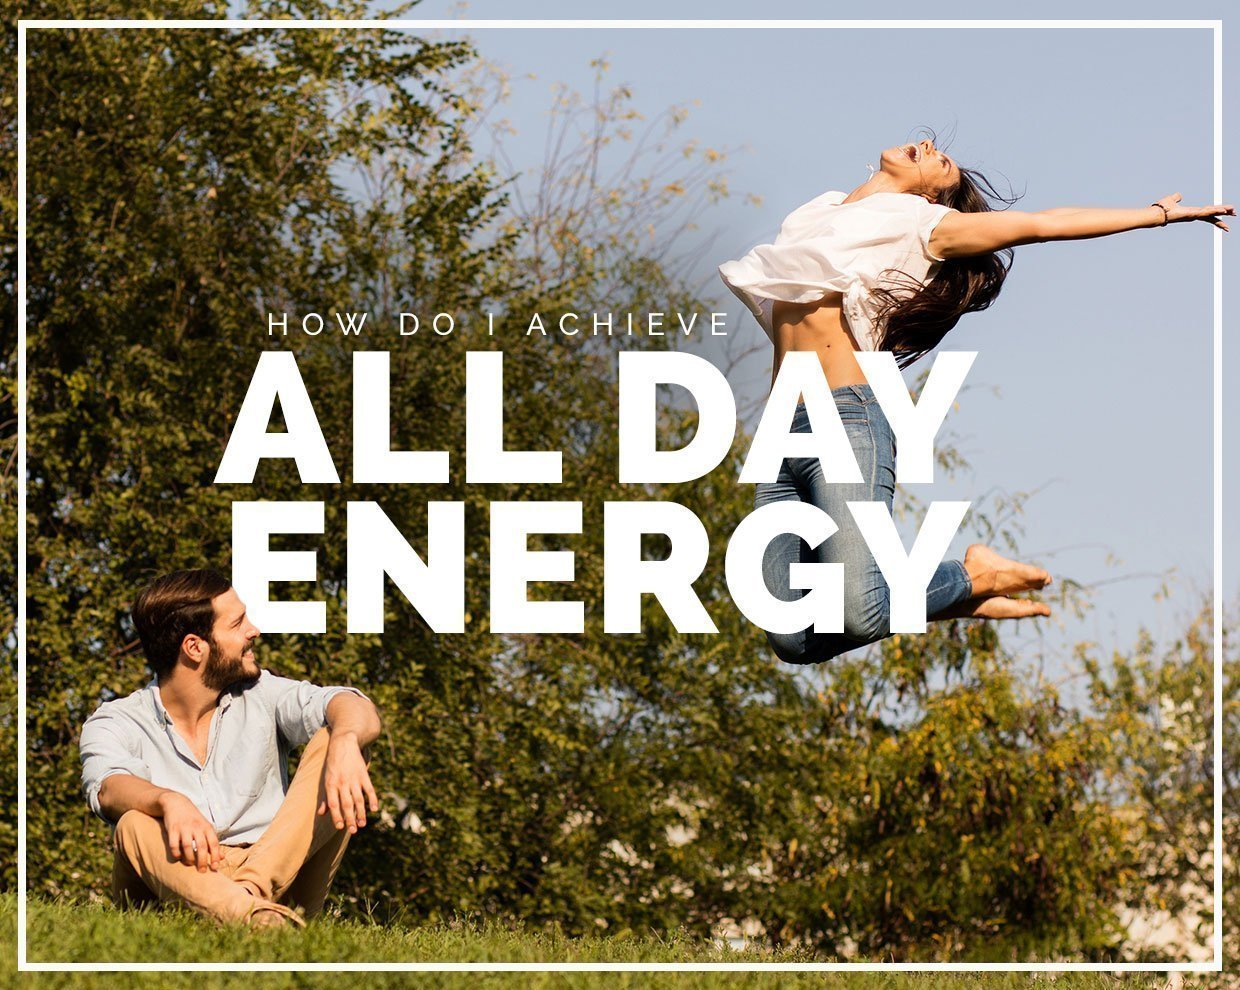 How do I achieve all day energy?